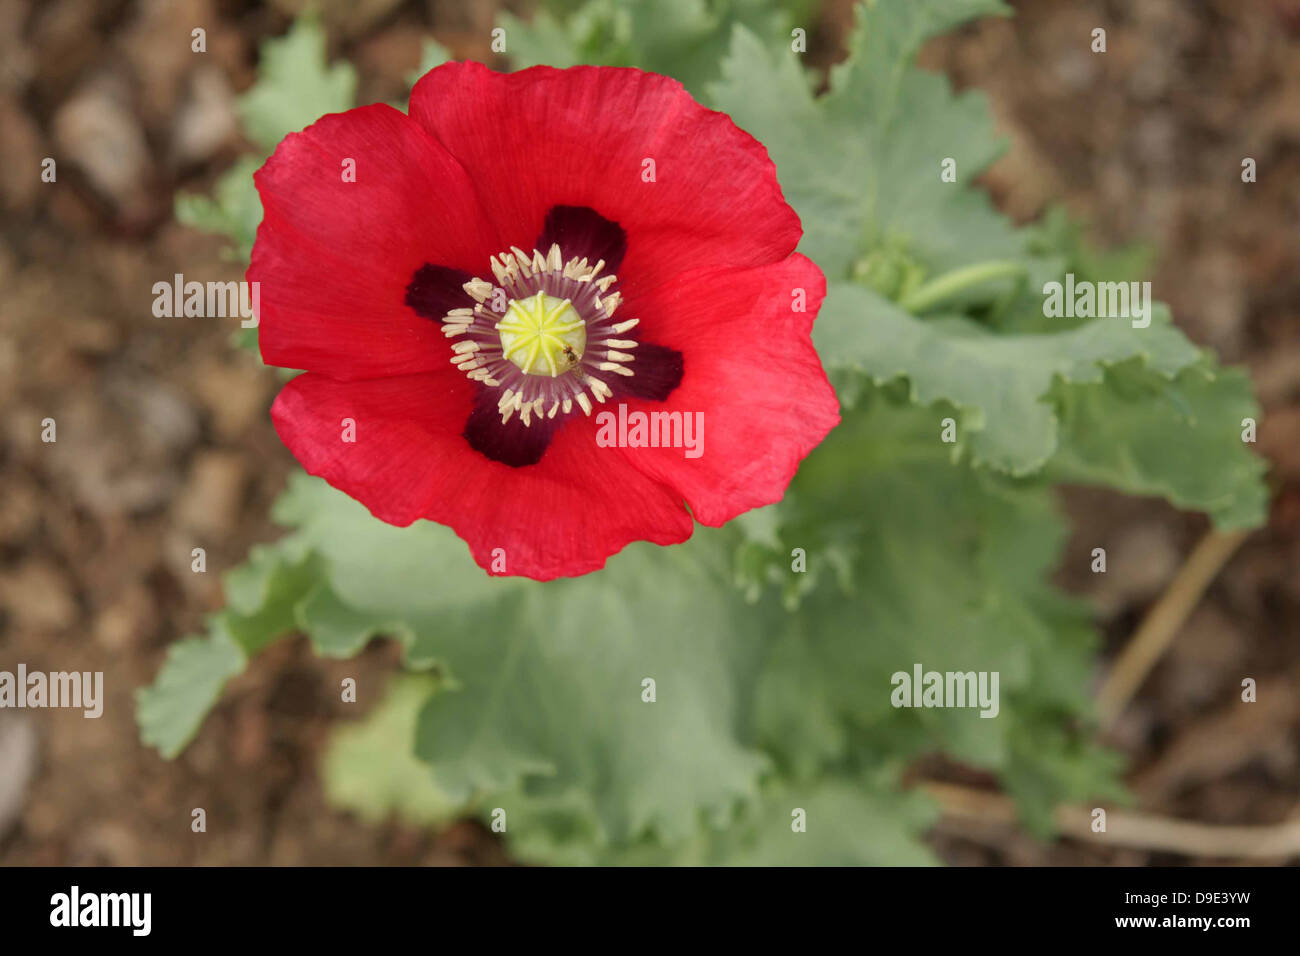 Poppy Flower Stock Photos Poppy Flower Stock Images Alamy